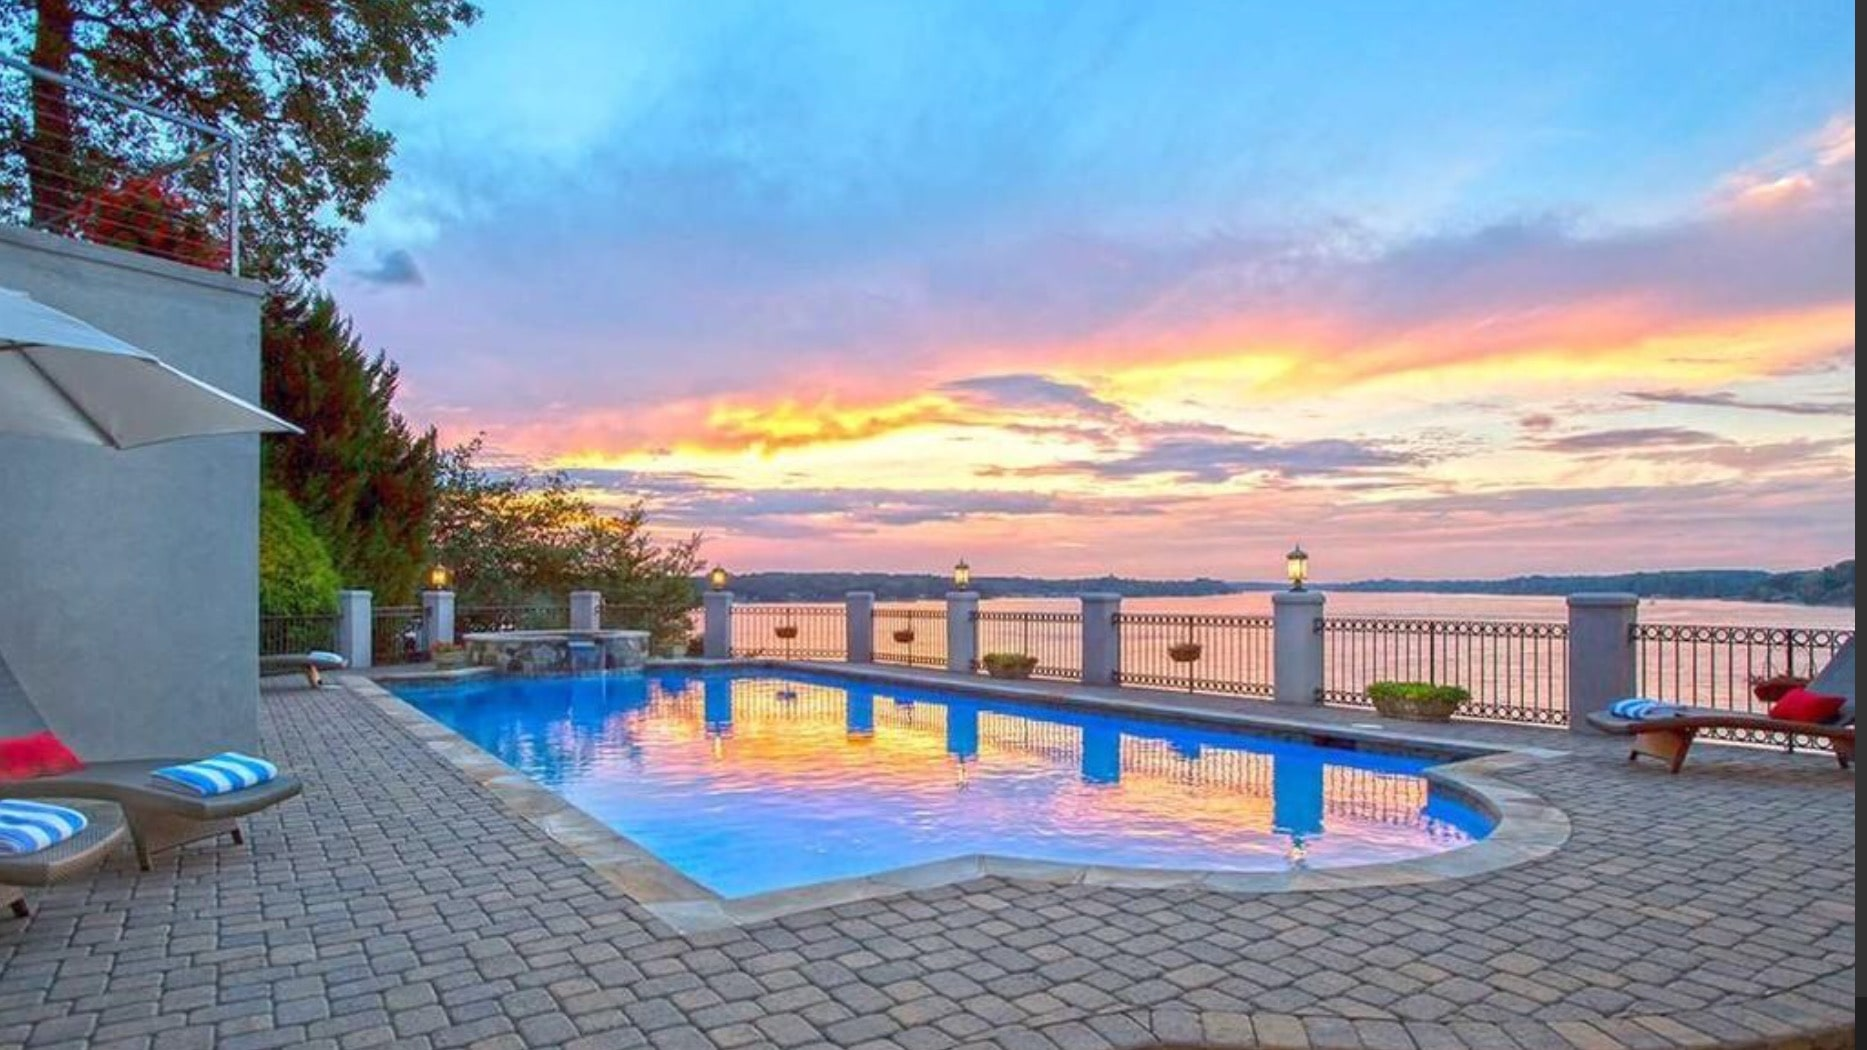 Stunning view of Lake Wylie from the pool.